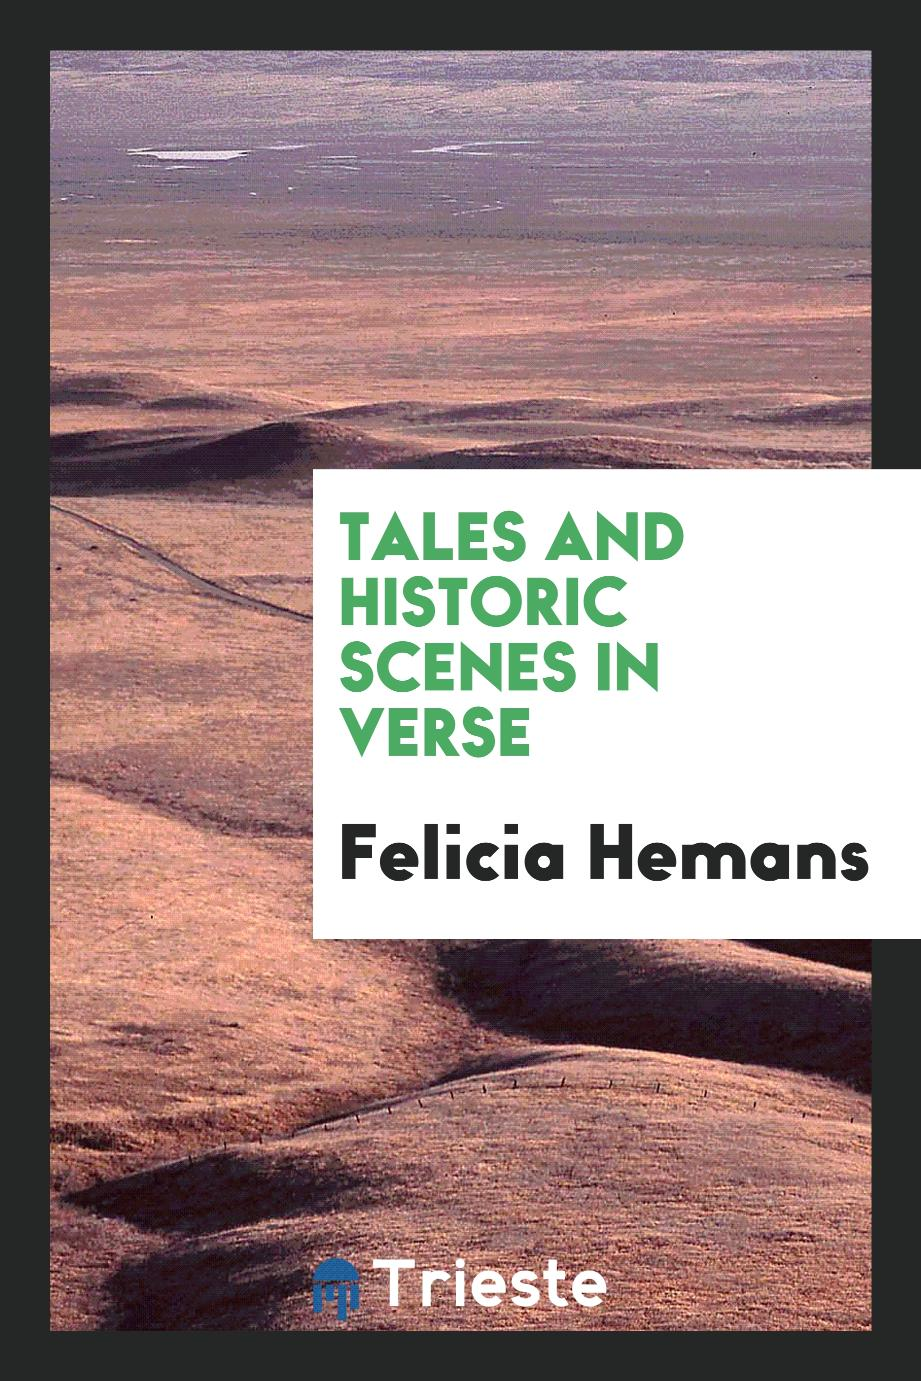 Tales and historic scenes in verse